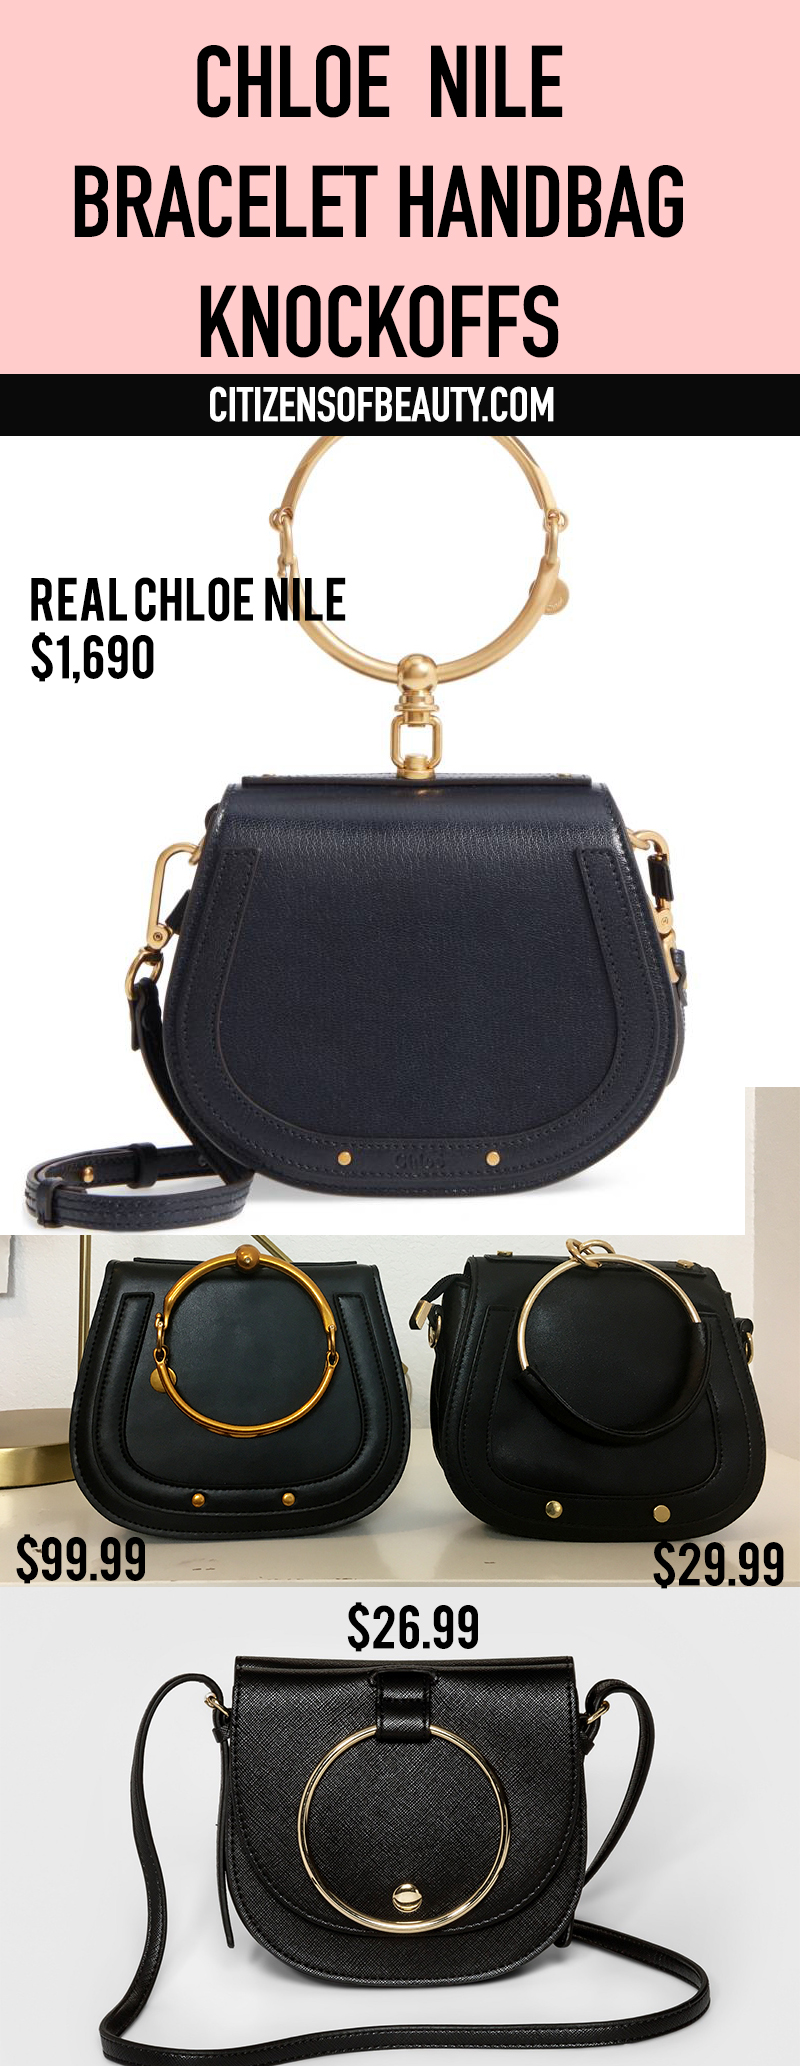 chloe nile handbag bracelet knockoffs